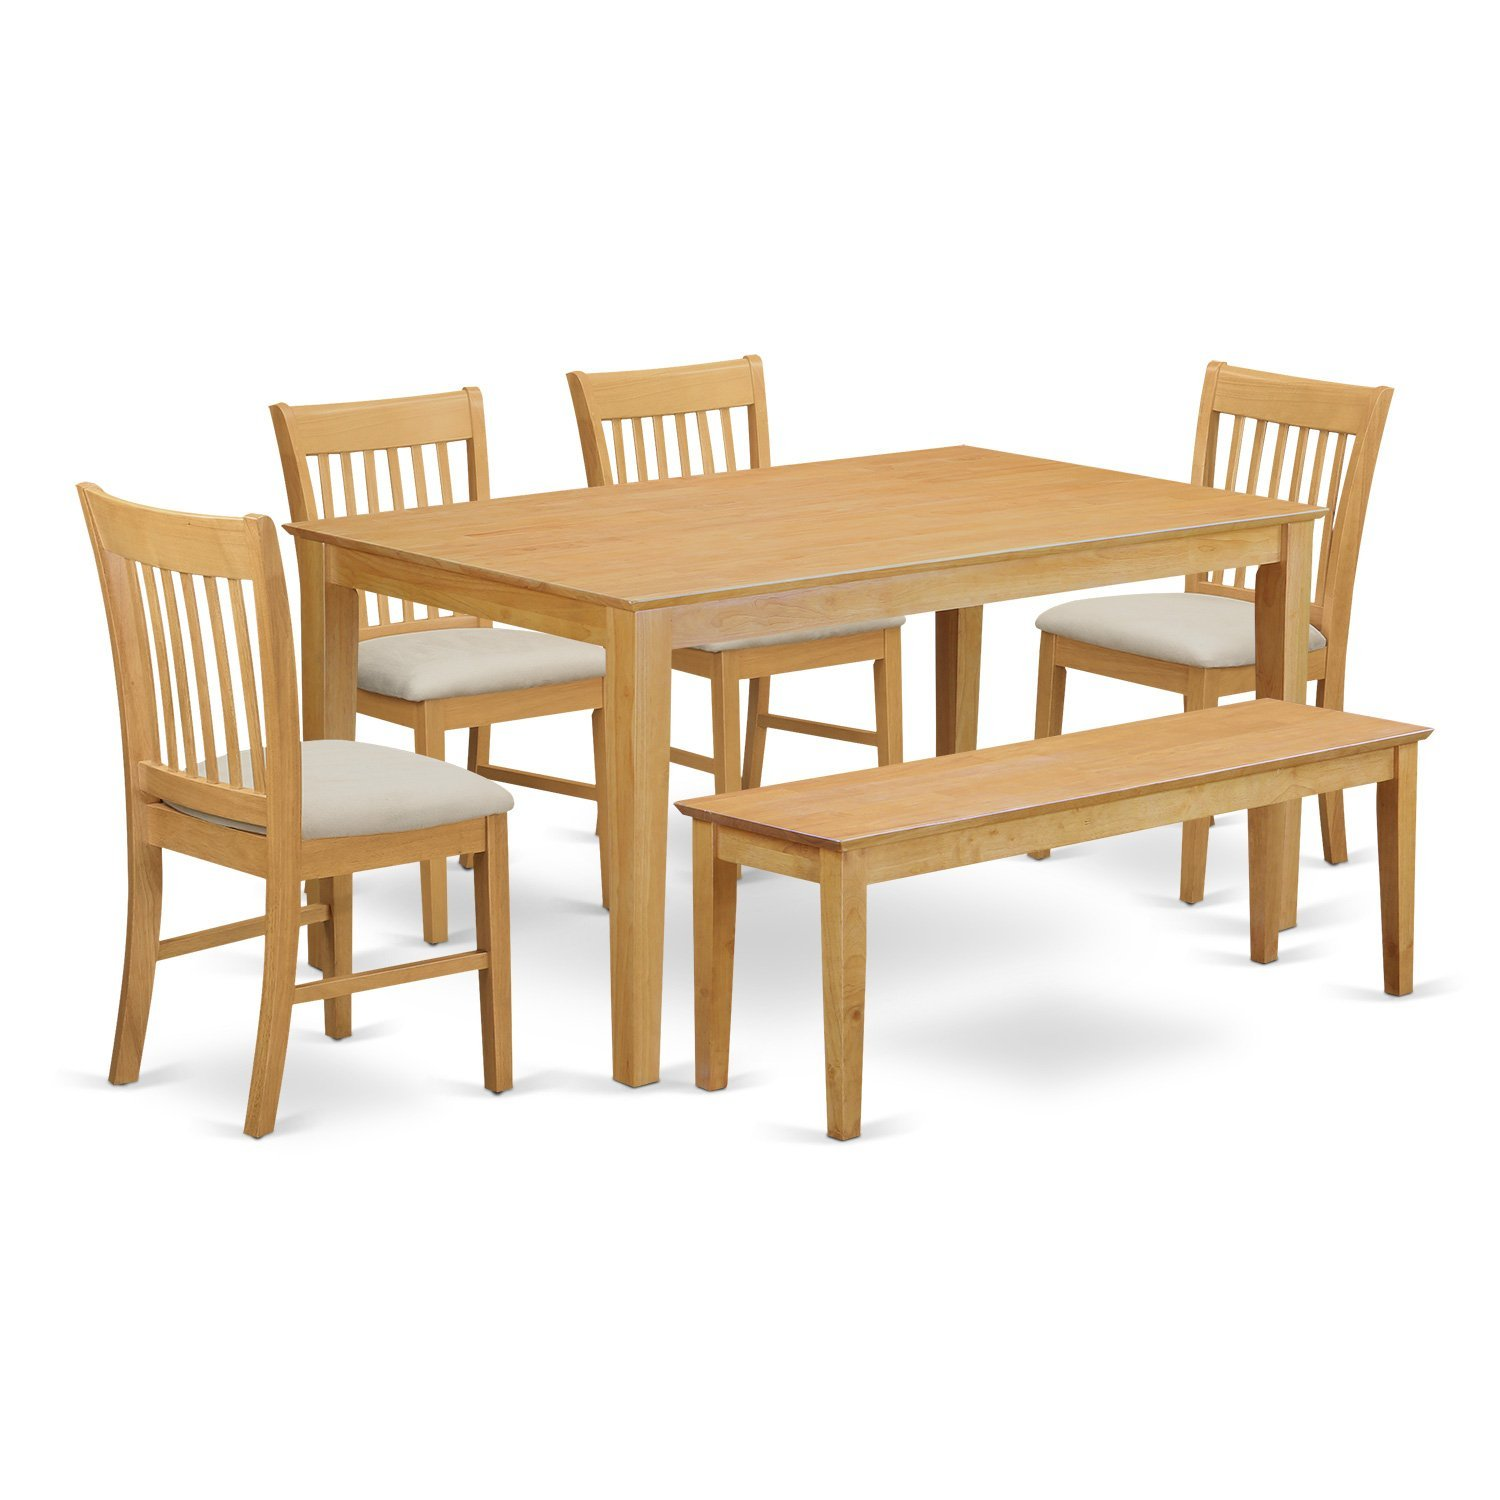 Amazon.com: East West Furniture CANO6-OAK-W 6-Piece Dining Table Set ...